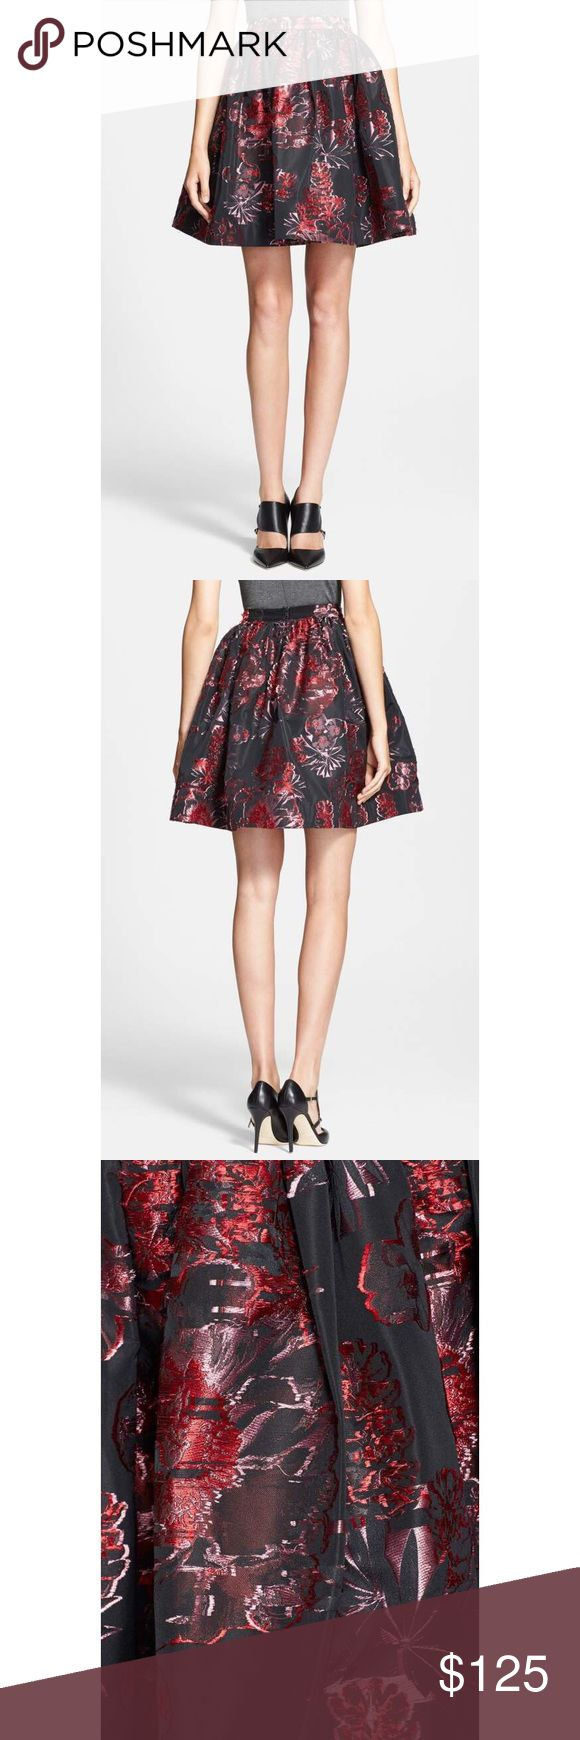 Alice + Olivia Pia Pouf Metallic Wildflower Skirt New Without Tags! Alice + Olivia Pia Pouf Black Metallic Wildflower Tea Skirt  Size Small Vibrant flowers explode across a girly pouf skirt shaped by volume-inducing pleats below the fitted waistband. Back zip closure. Fully lined. 80% polyester, 20% acetate. Dry clean. By Alice + Olivia; imported. Item #450020 Sold Out In All Stores And Online This Skirt Is A Super Cute Spring Must Have! Alice + Olivia Skirts Mini